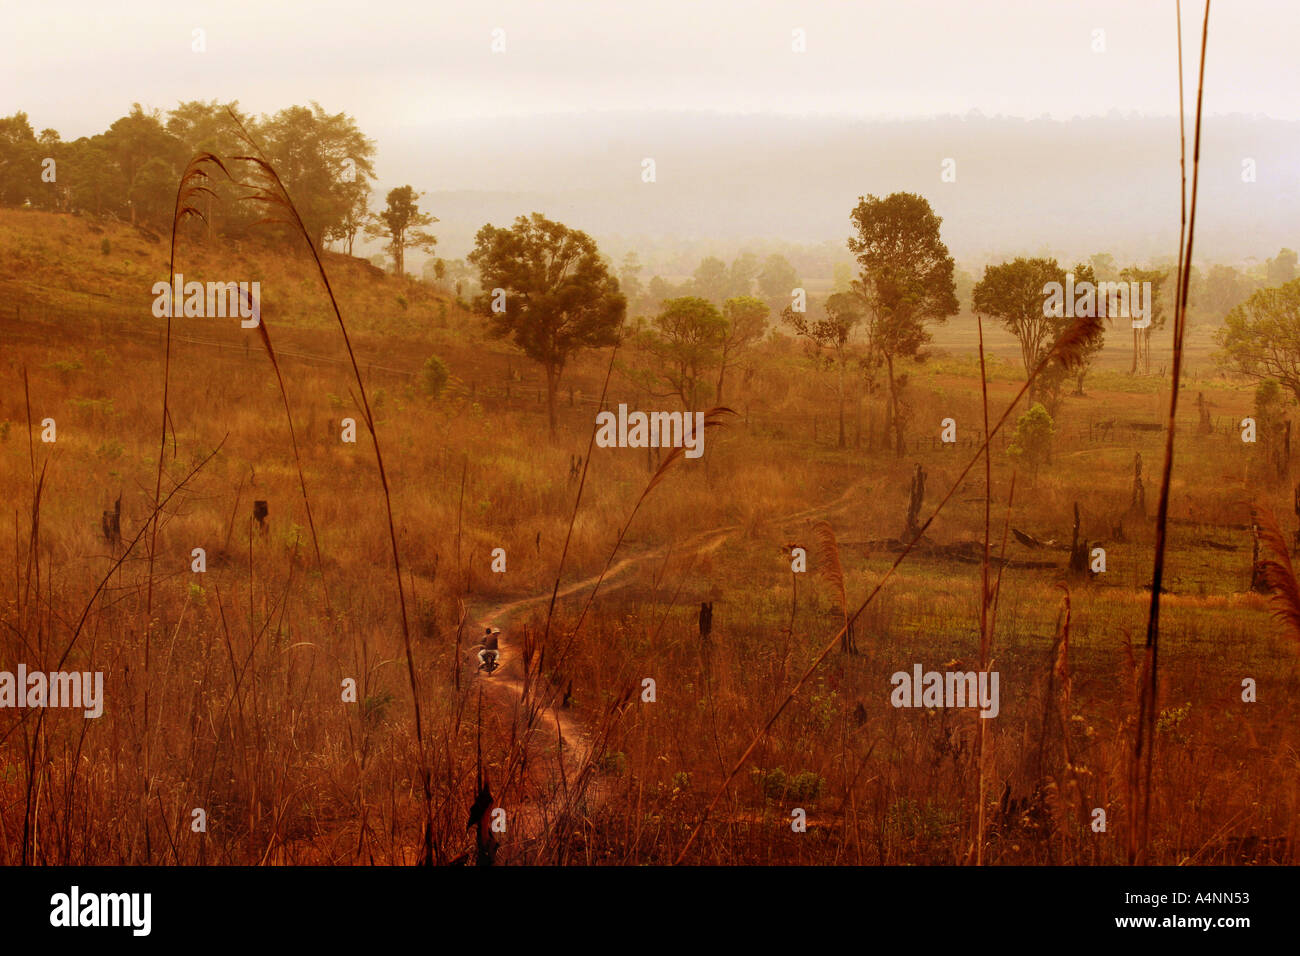 The remote Veal veng Valley at dawn deep in Cambodia s inaccessible Cardamon Forest Asia s last virgin forest due to KR contr - Stock Image